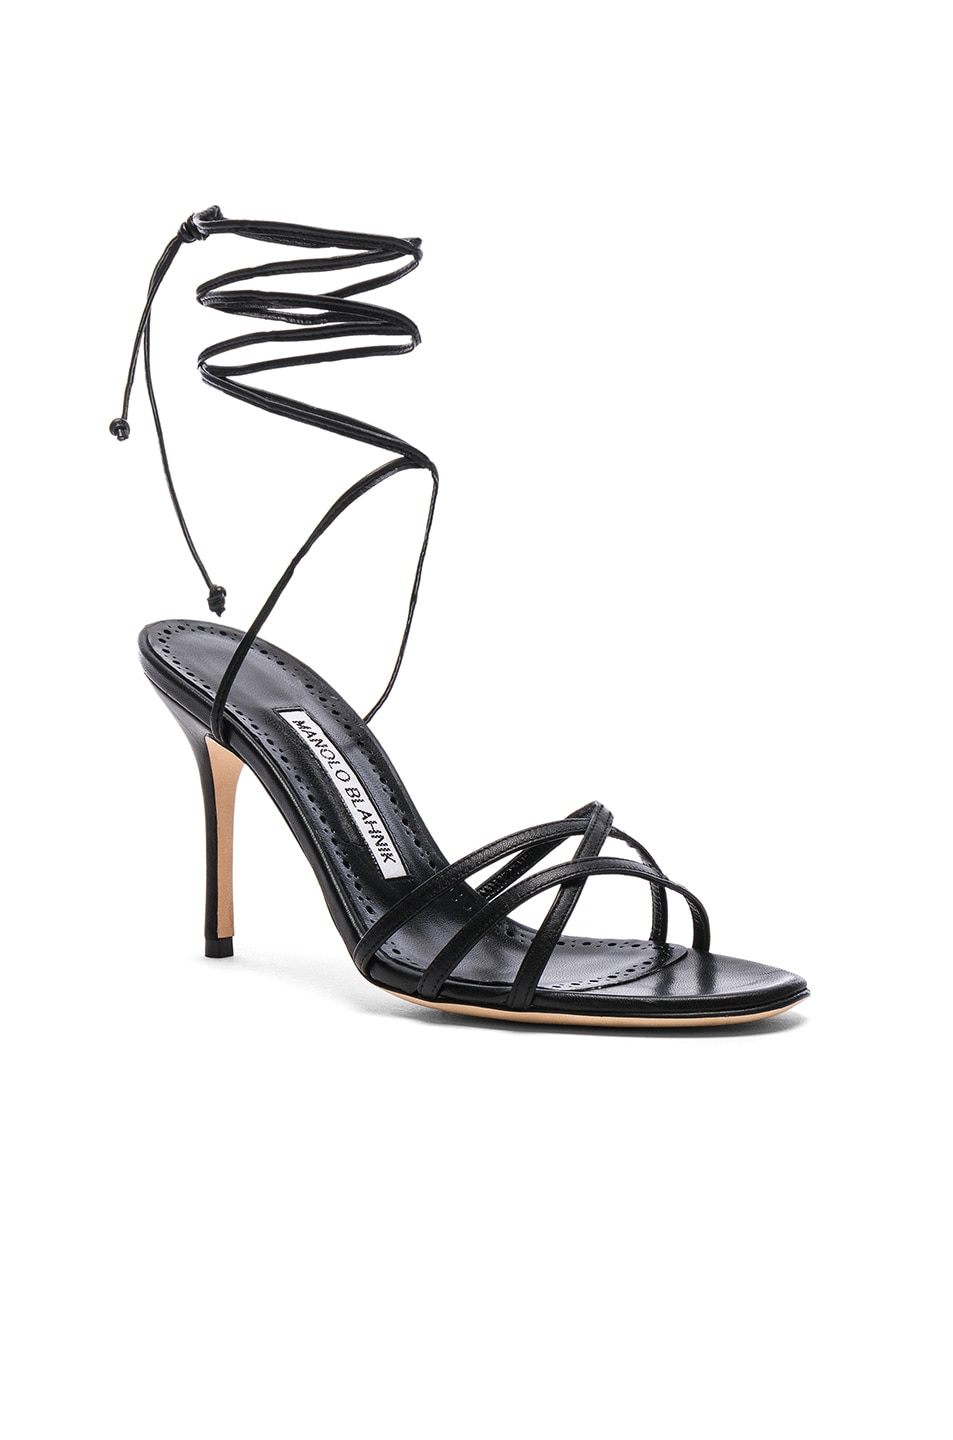 Manolo Blahnik Leather Leva 90 Sandals in .